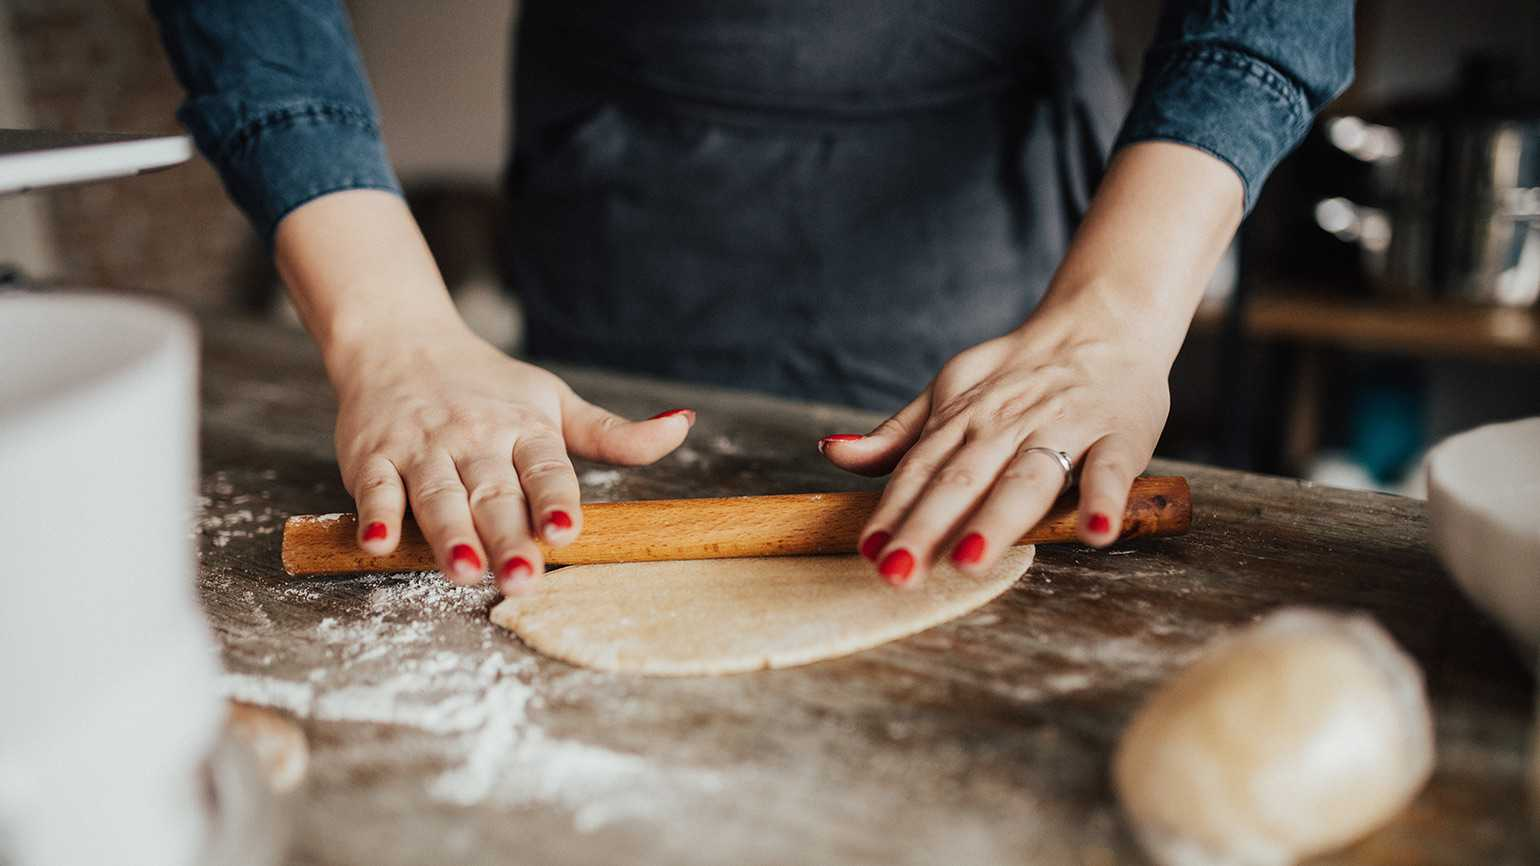 The Psychological Benefits of Baking for Others